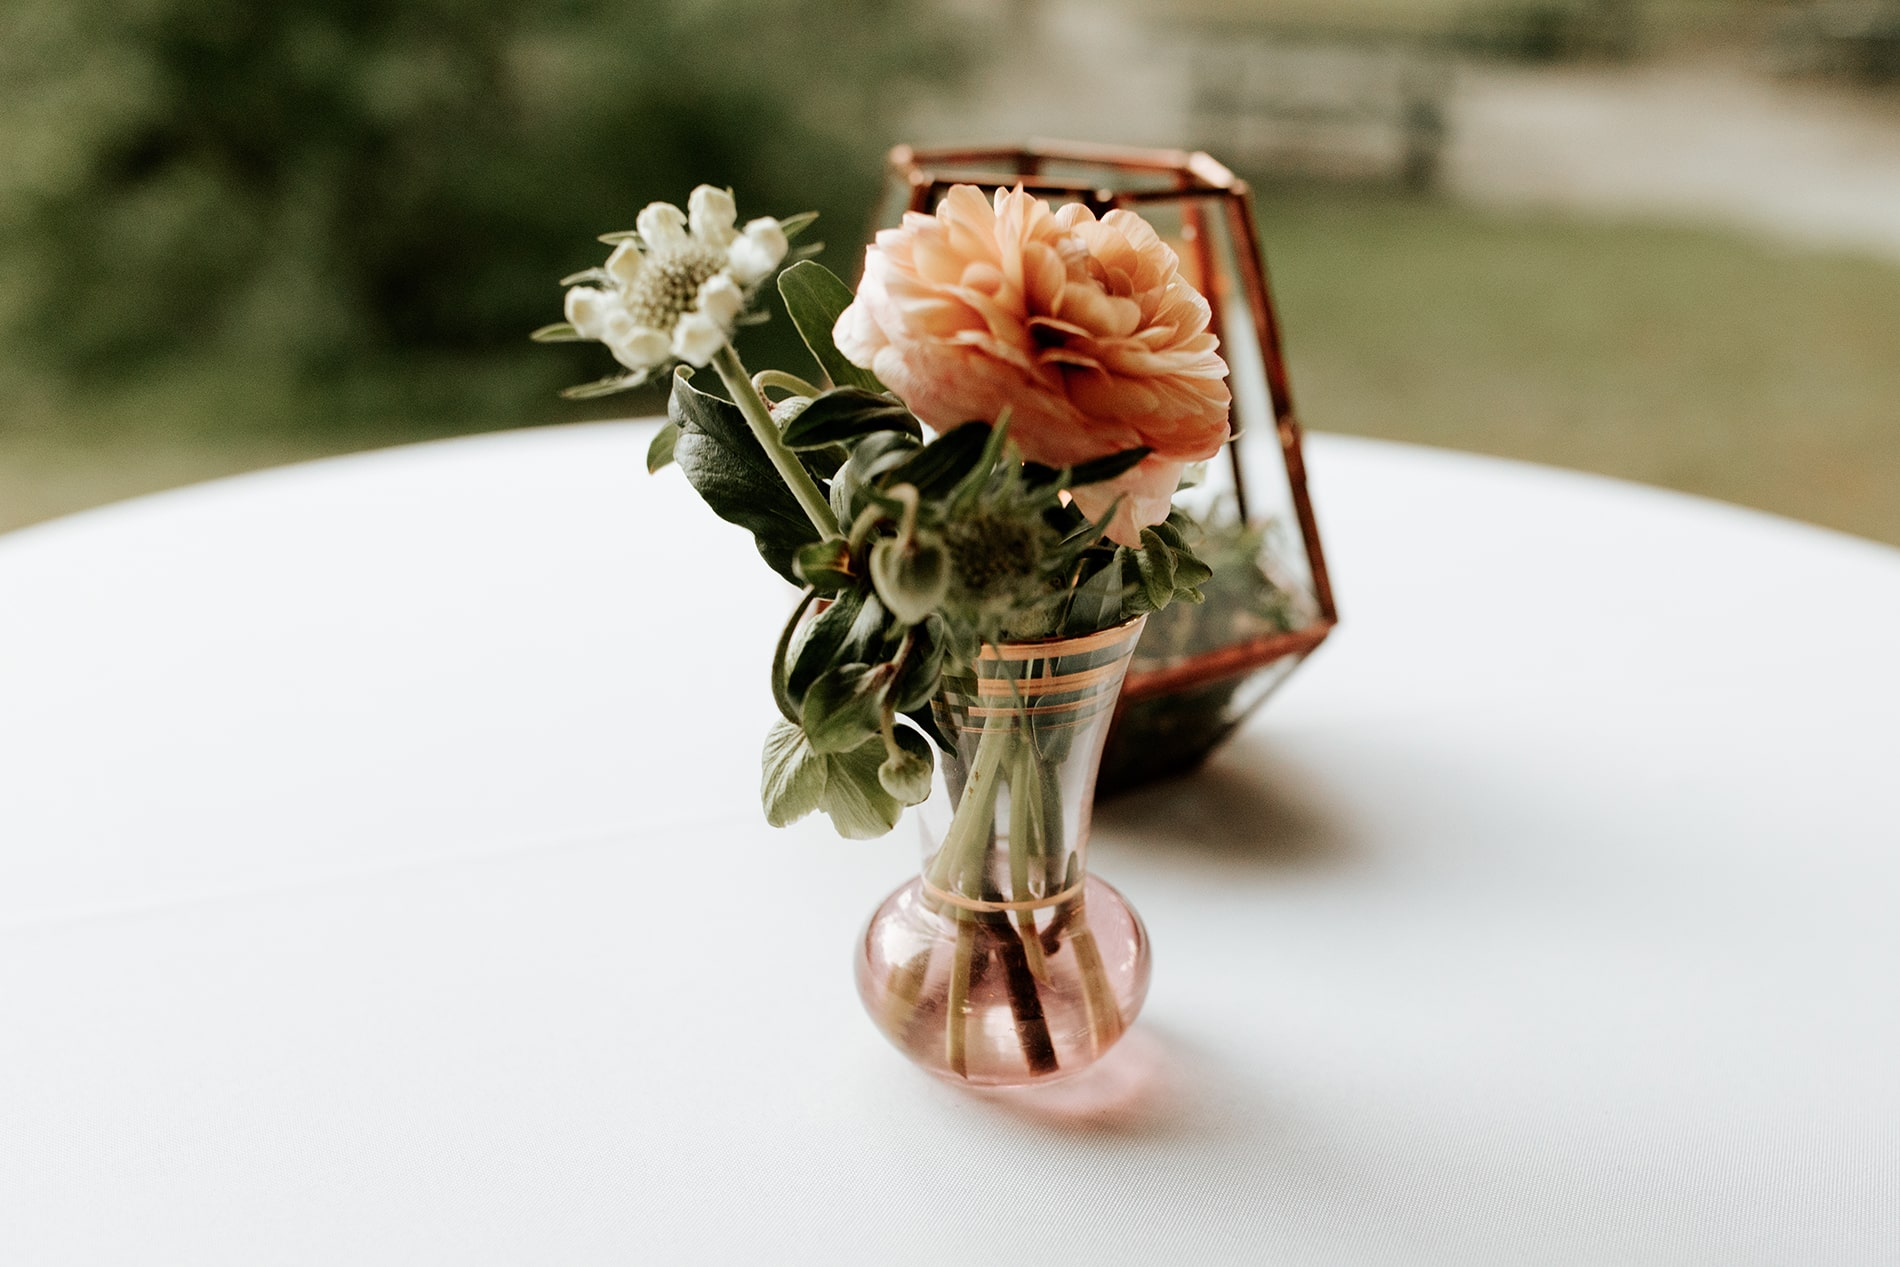 lowcountry-kitchen-catering-beaufort-sc-mary-grace-and-judd-kennedy-wedding-ceremony-table-flower-min.jpg